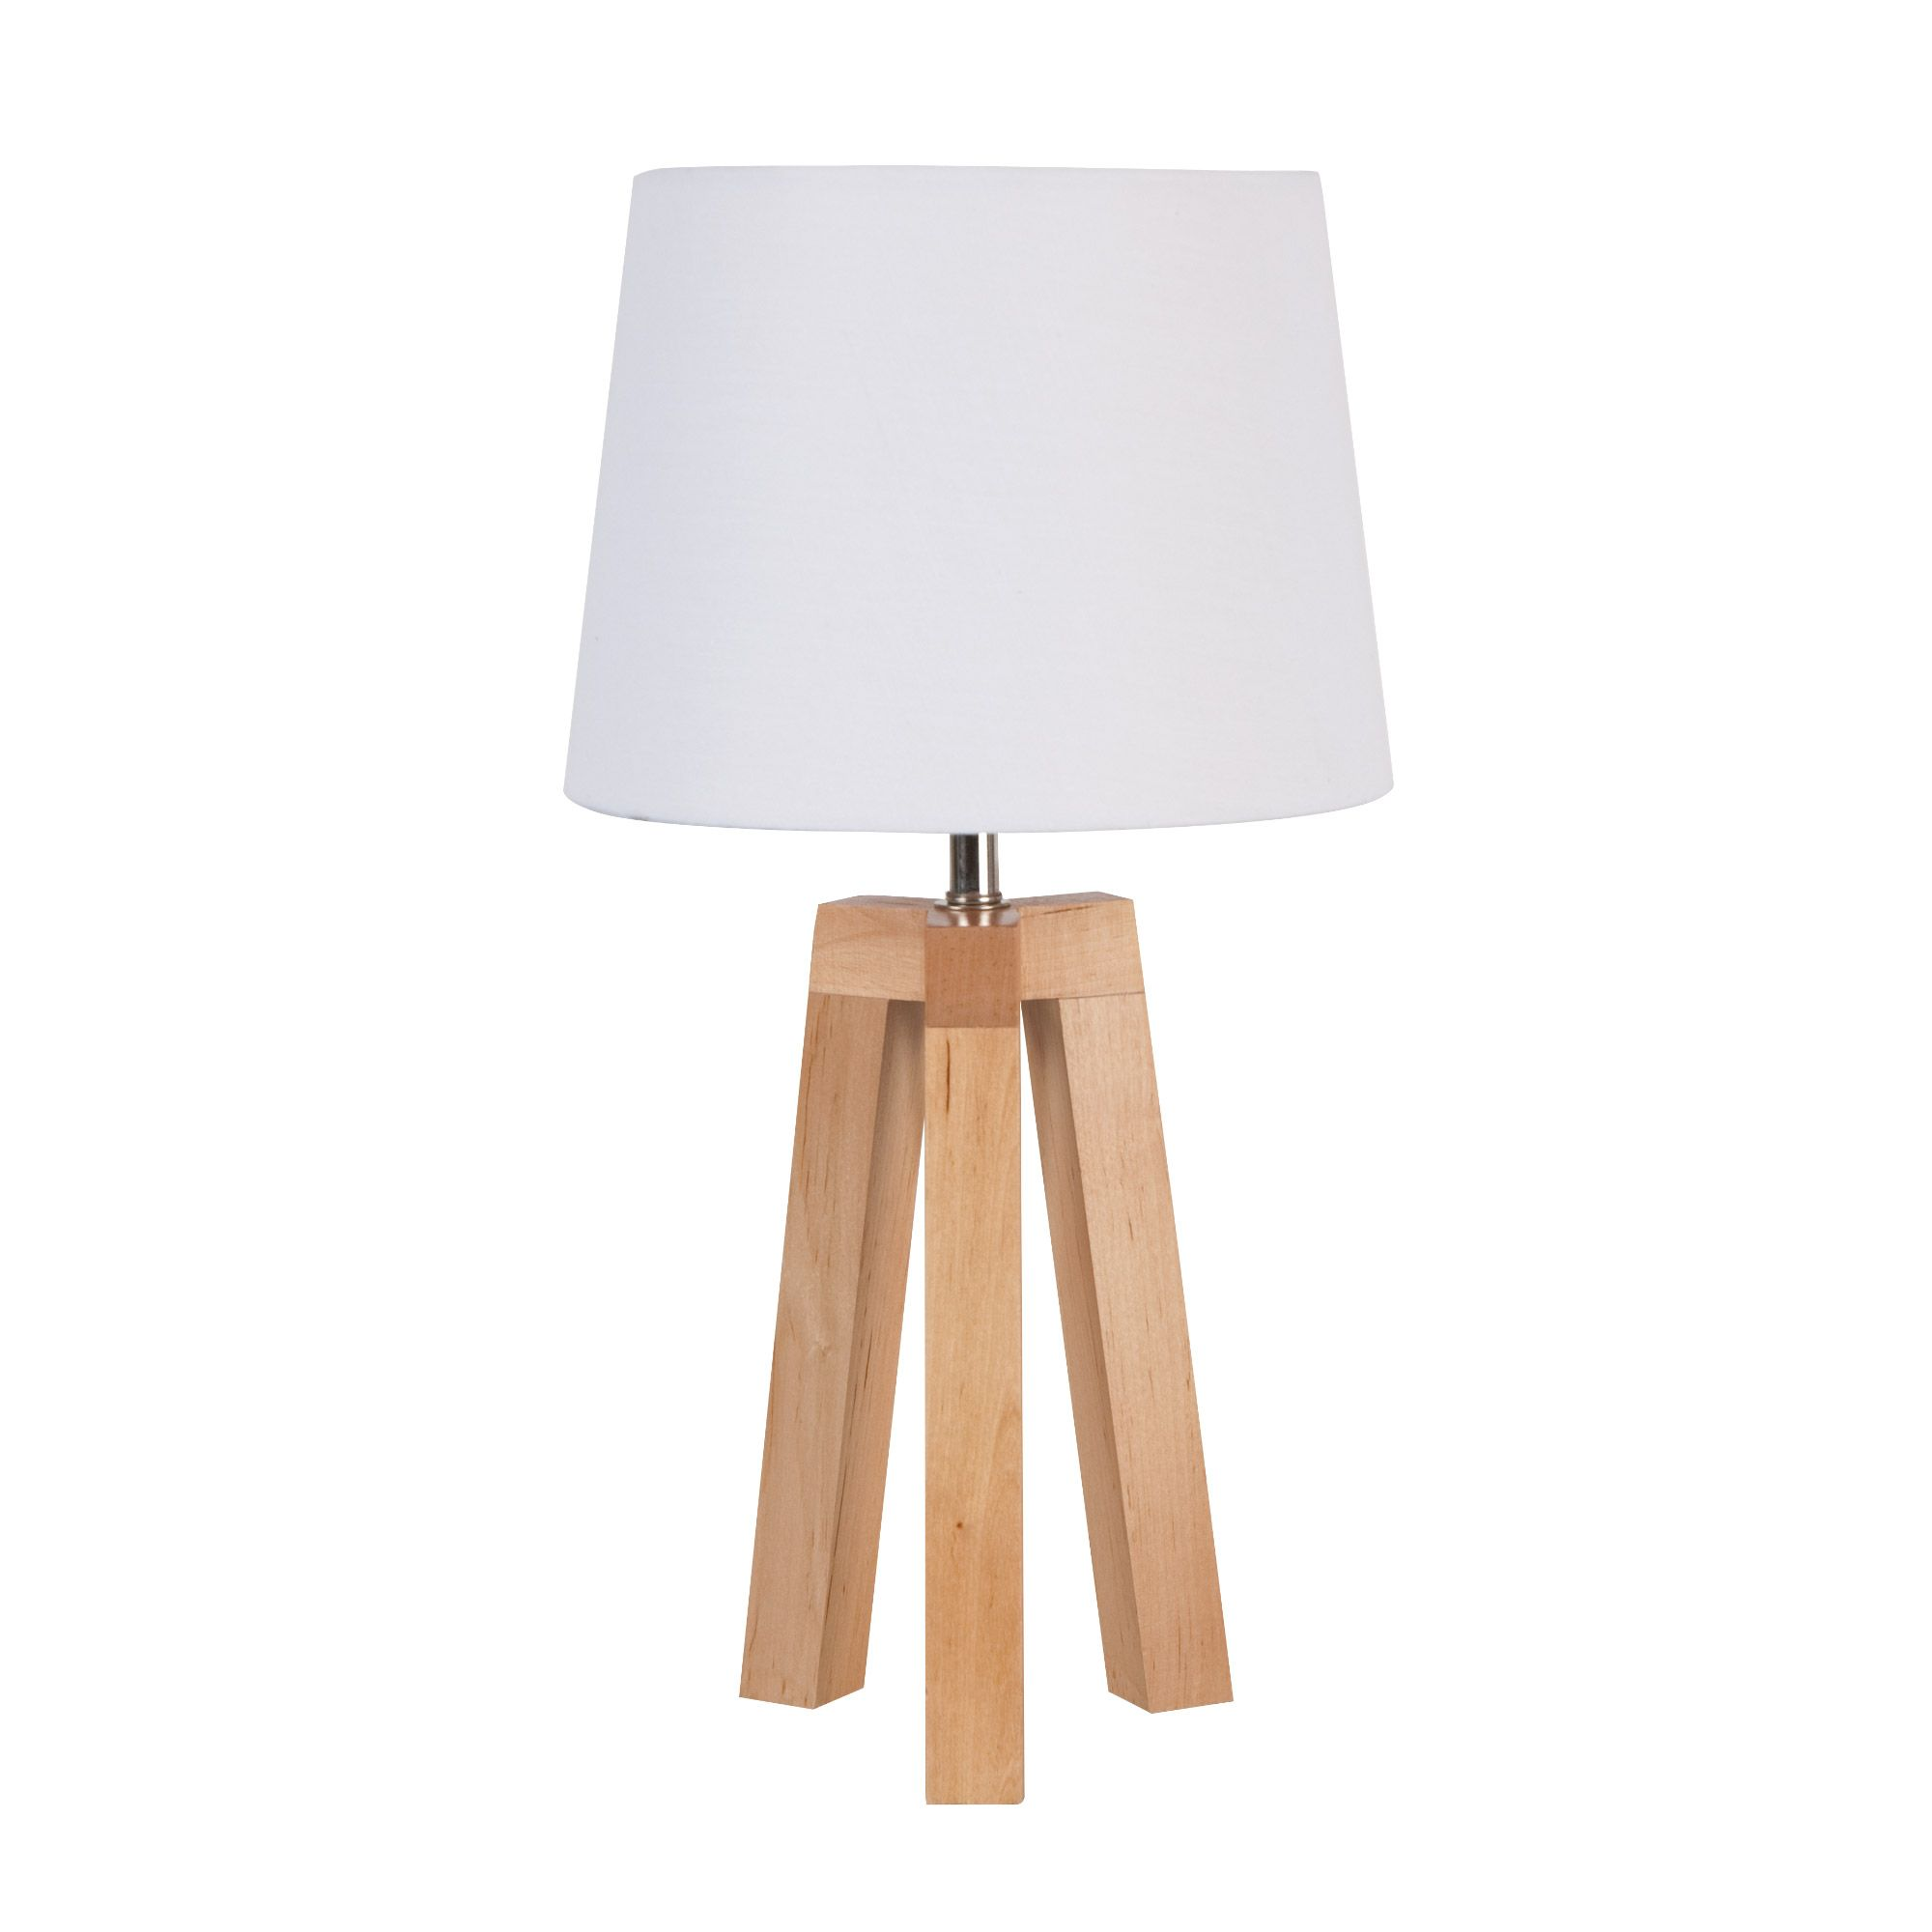 Chevet Cocktail Scandinave Lampe Style Scandinave Corep Décoration Et Design